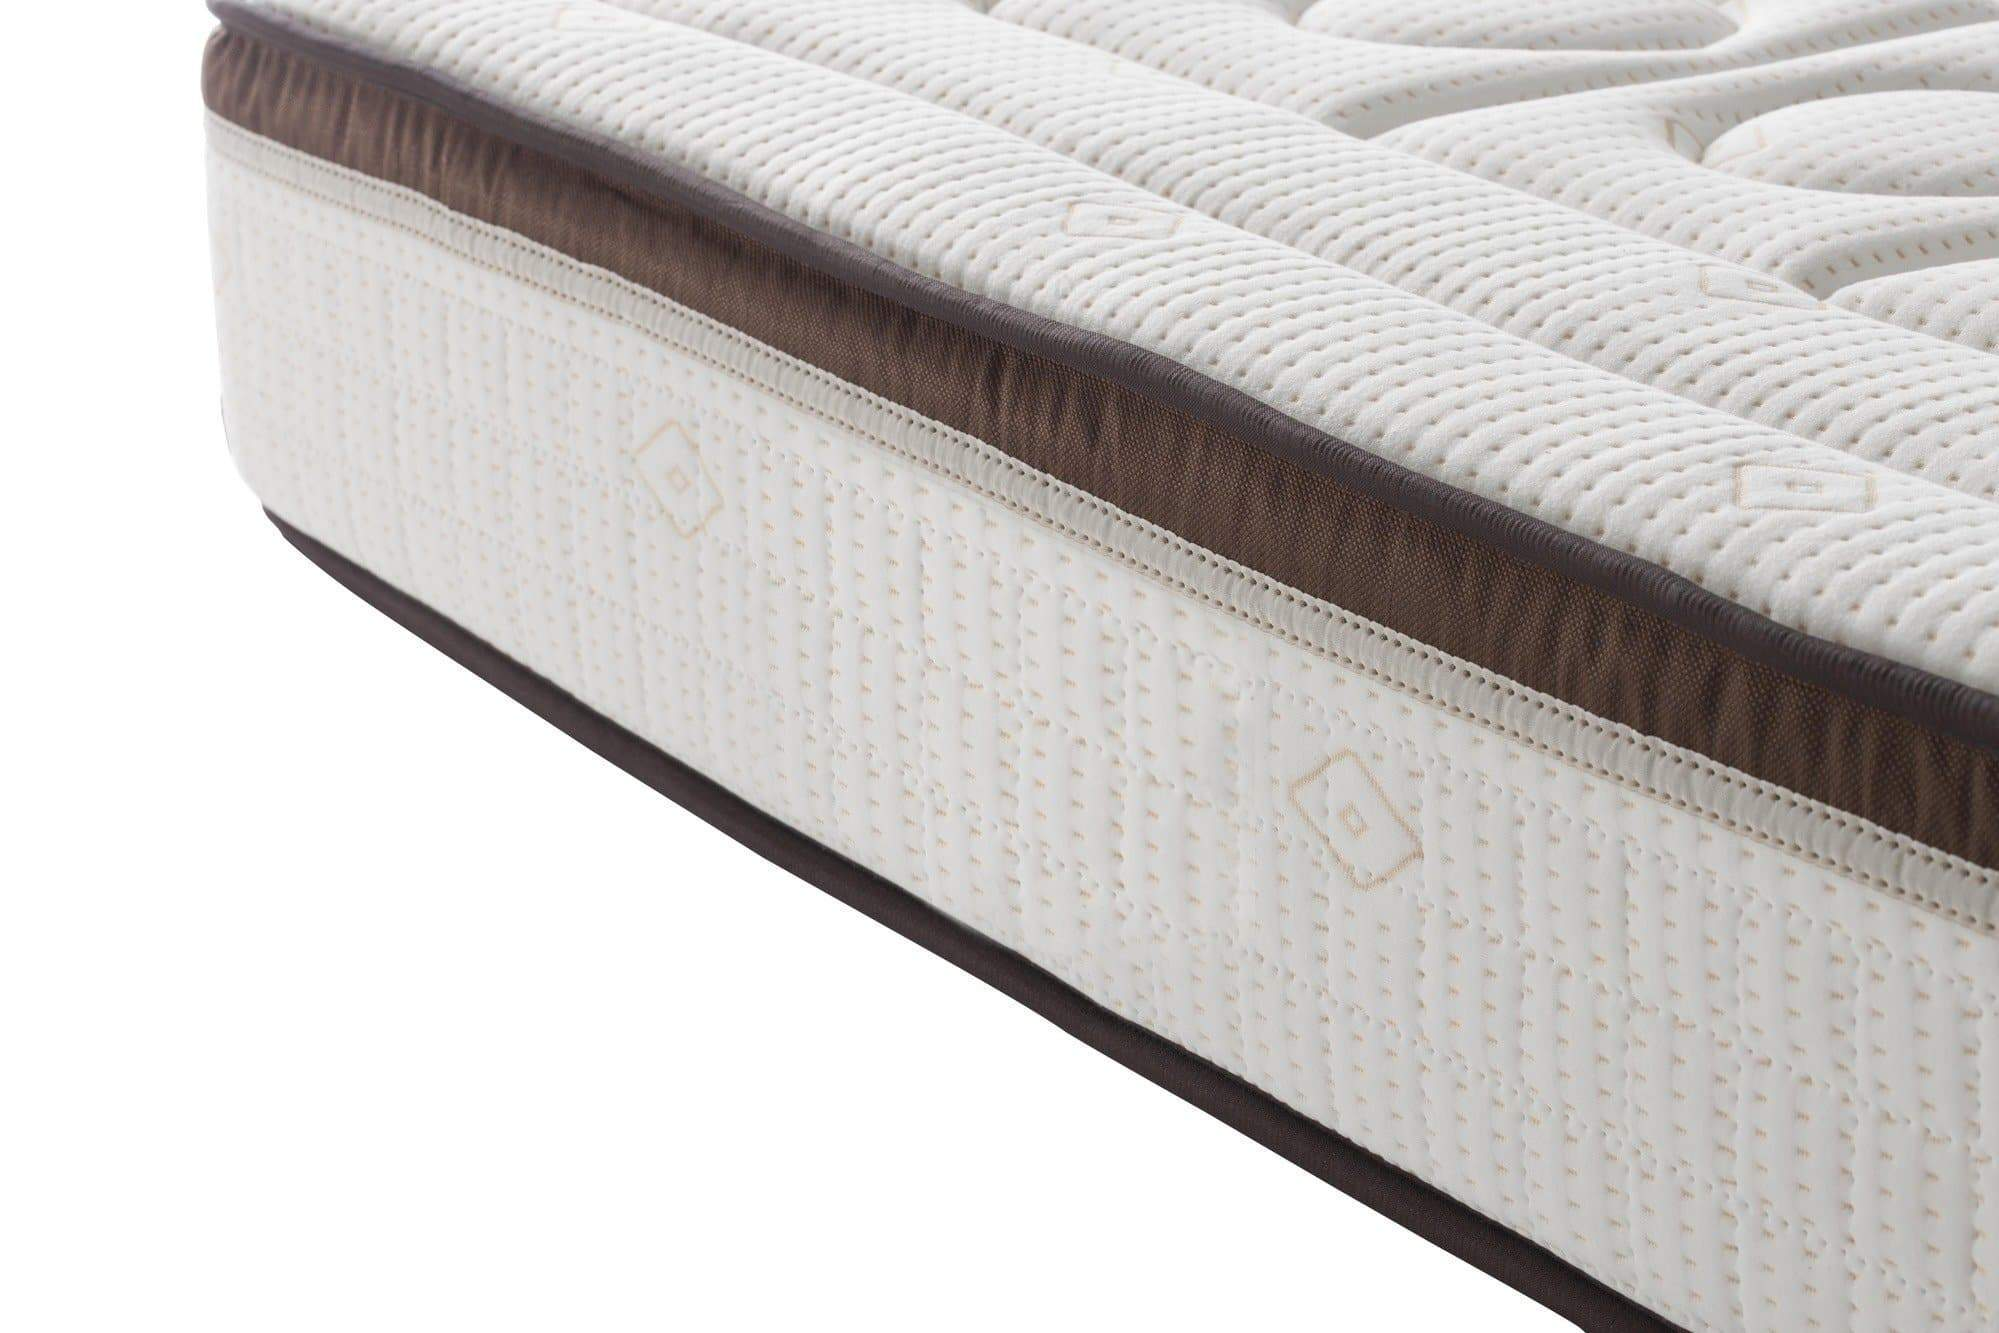 Toscana Deluxe 21 - 4 - BEZEN MATTRESS AND HEALTH